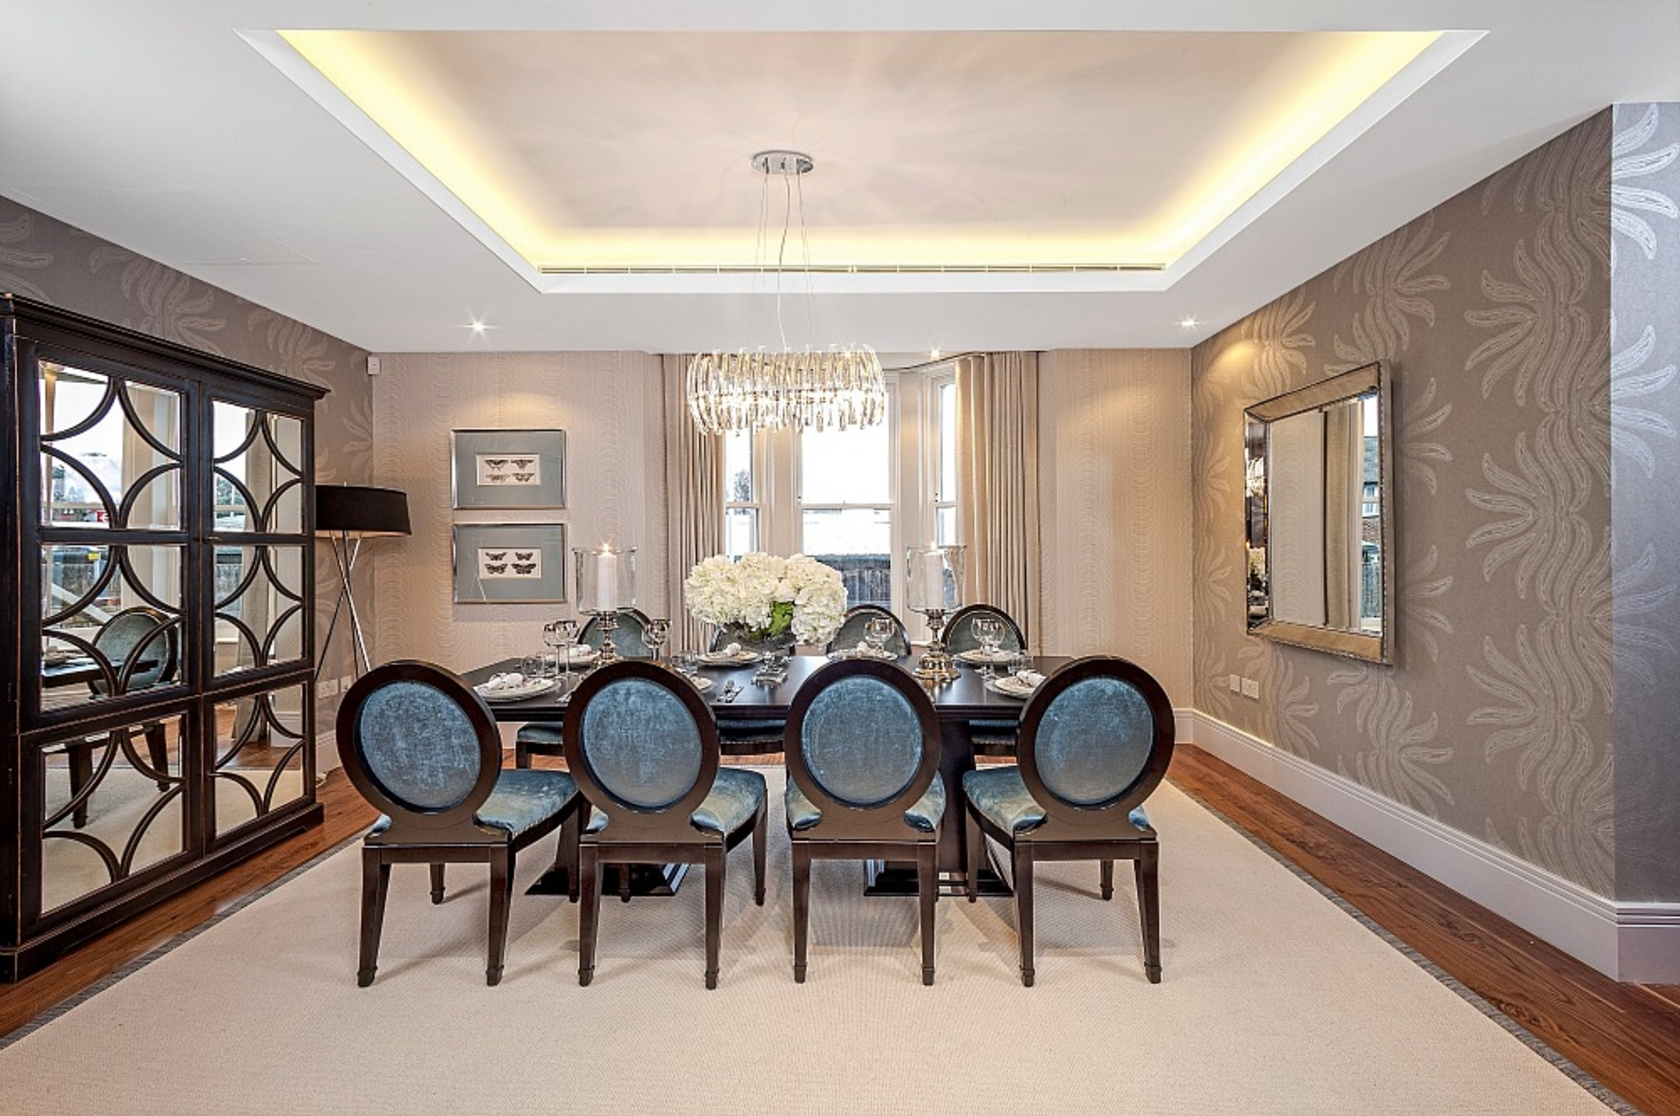 Projects Submenu Arrow Most Popular Kitchens Living Room Bedroom Dining Room Bathroom More Dining Room Bathroom Children S Rooms Cinema Room Entrance Exterior Home Office Hallway Garden Outdoor Staircase View All Projects